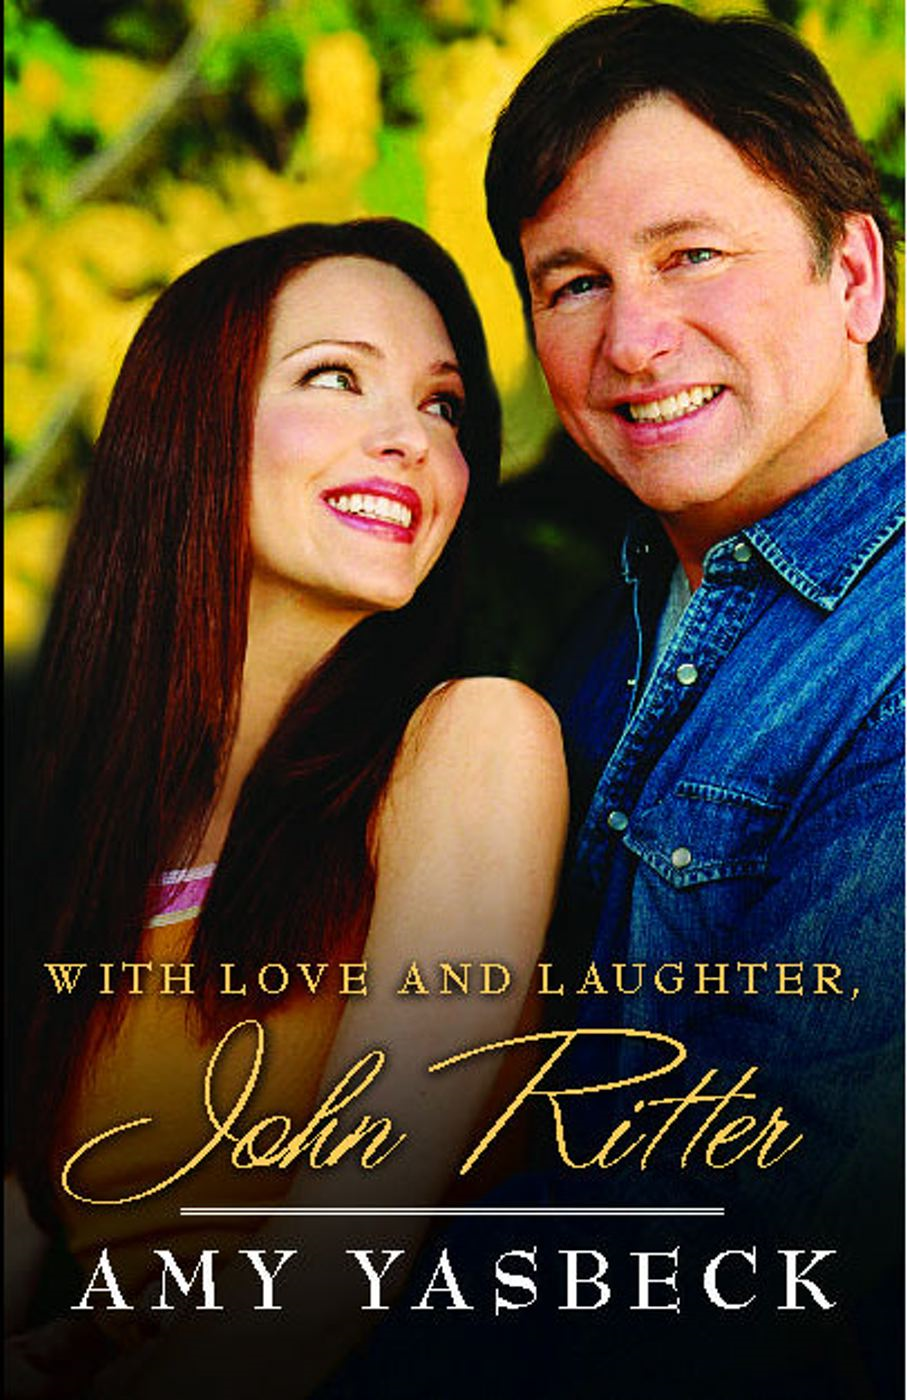 With Love and Laughter, John Ritter By: Amy Yasbeck